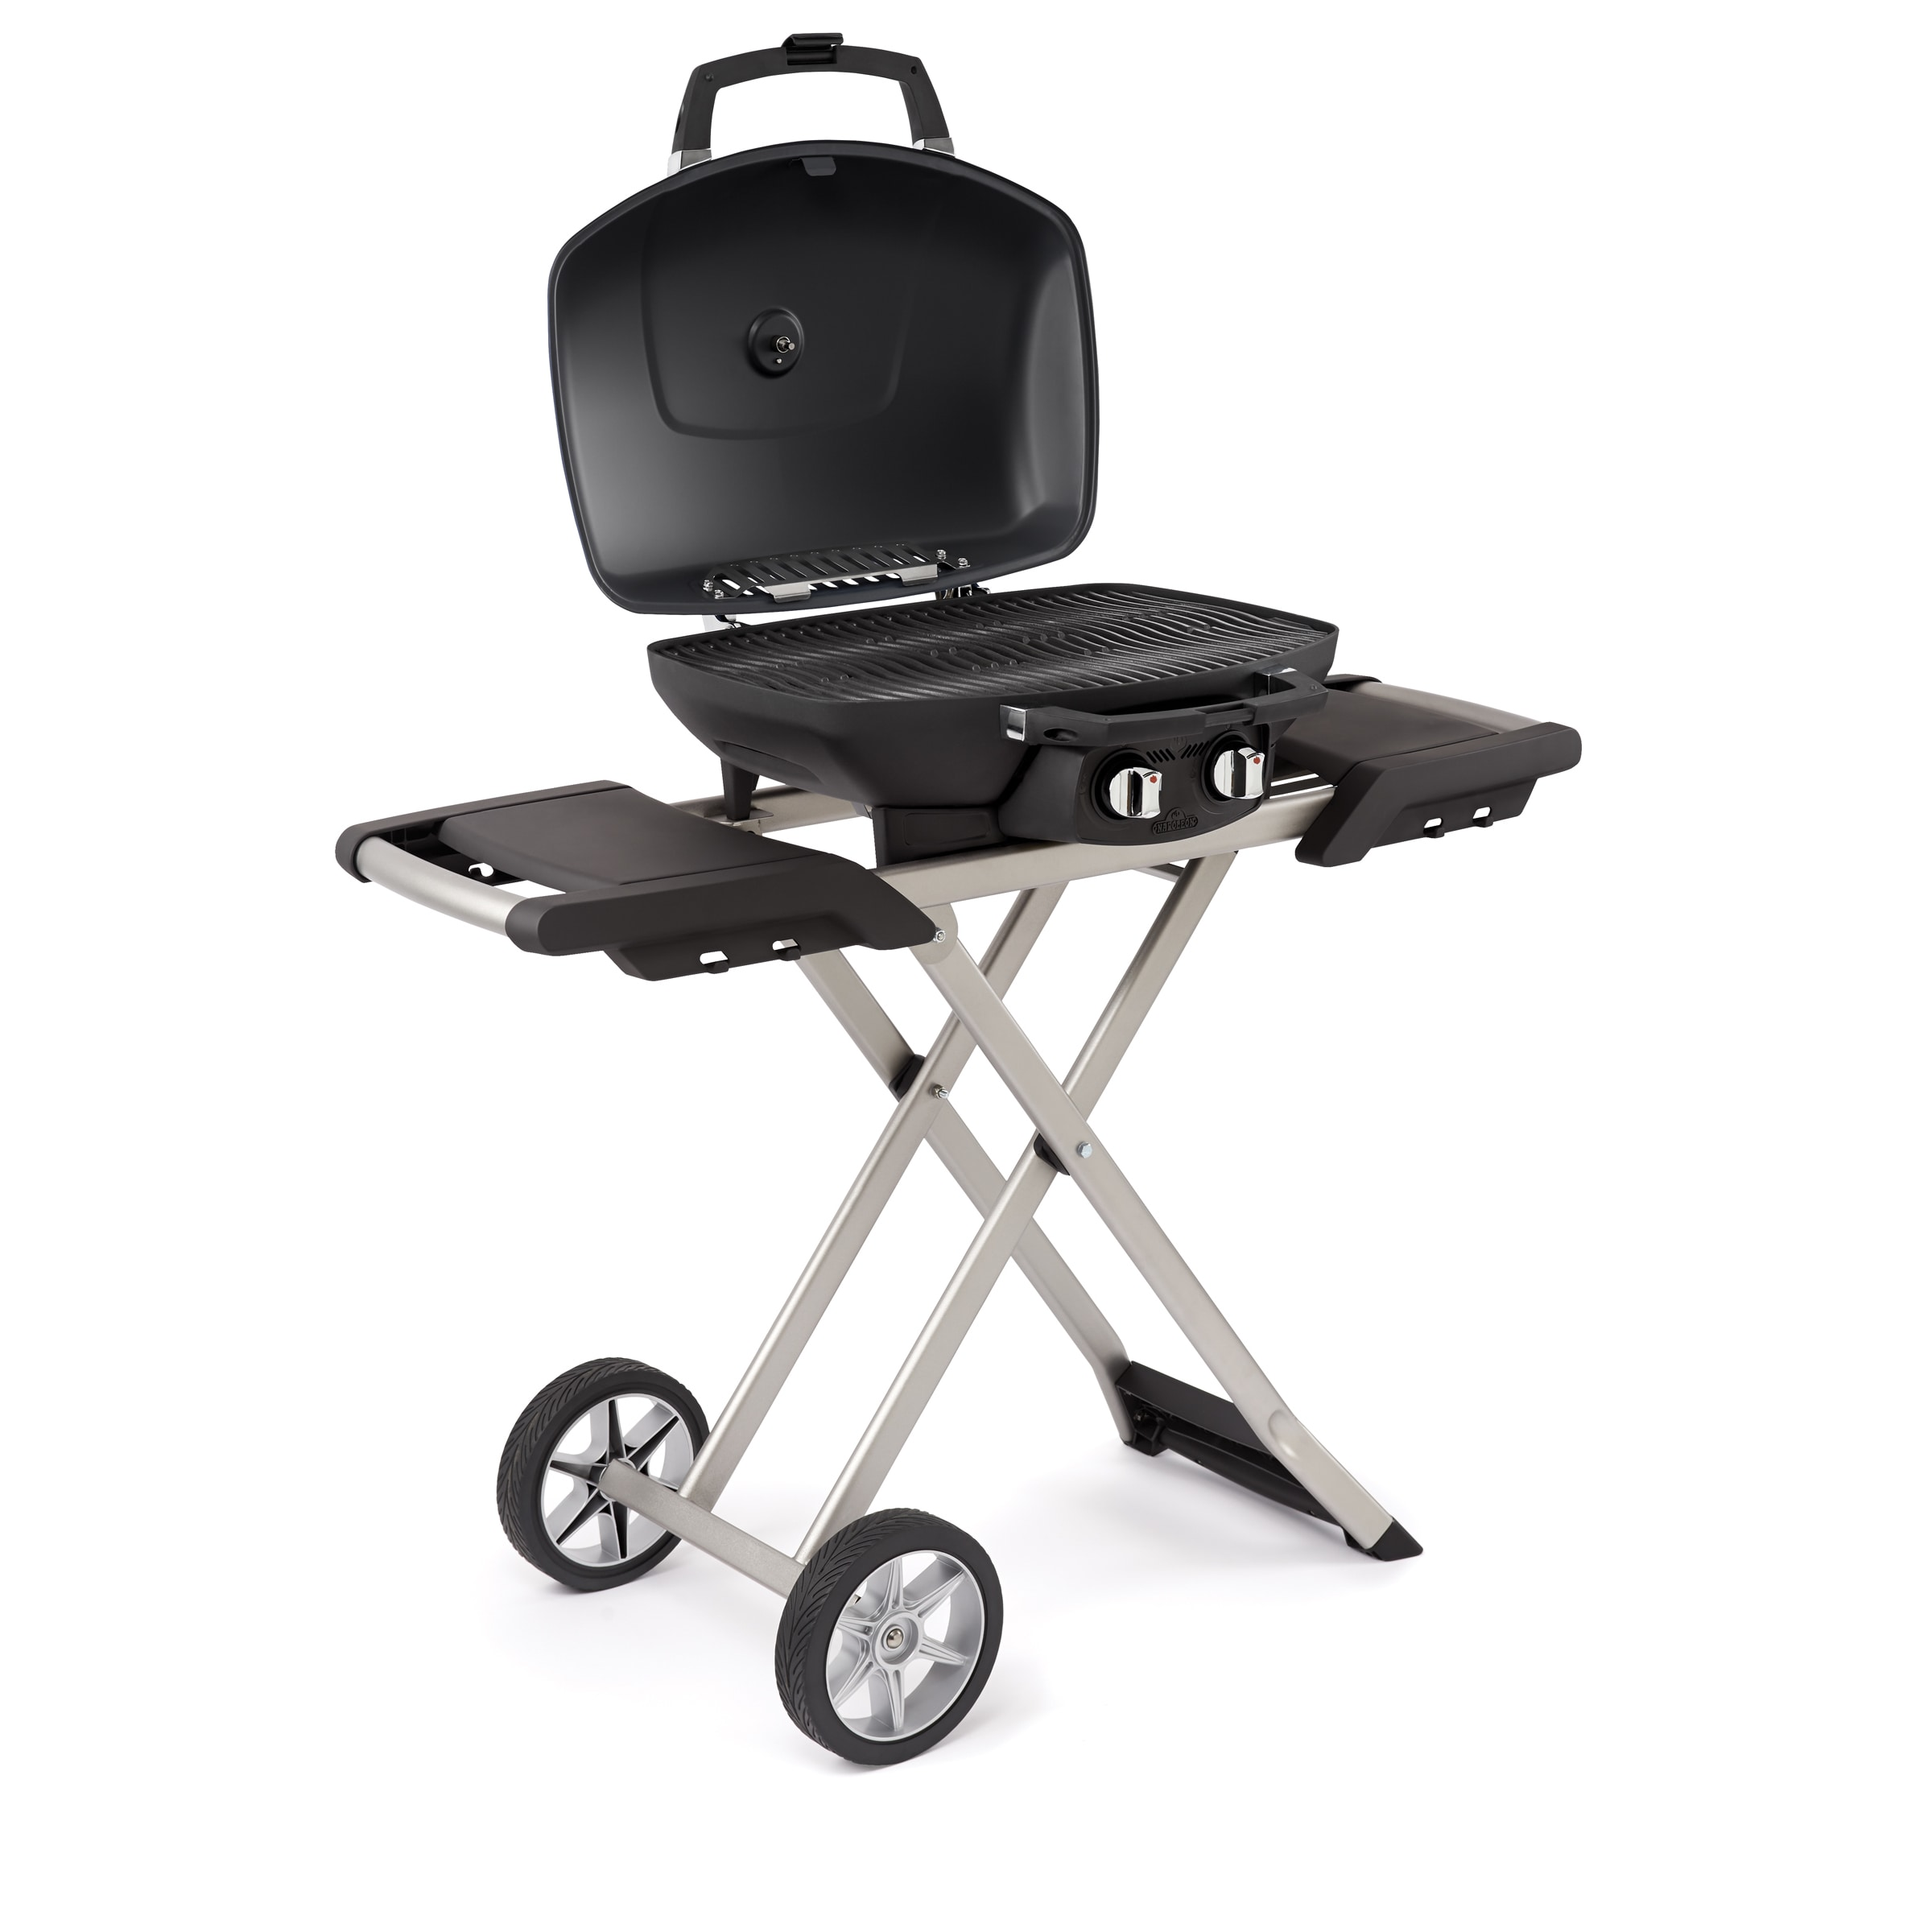 Marvelous Napoleon TravelQ 285 Portable Propane Grill With Scissor Cart   Free  Shipping Today   Overstock   18954351